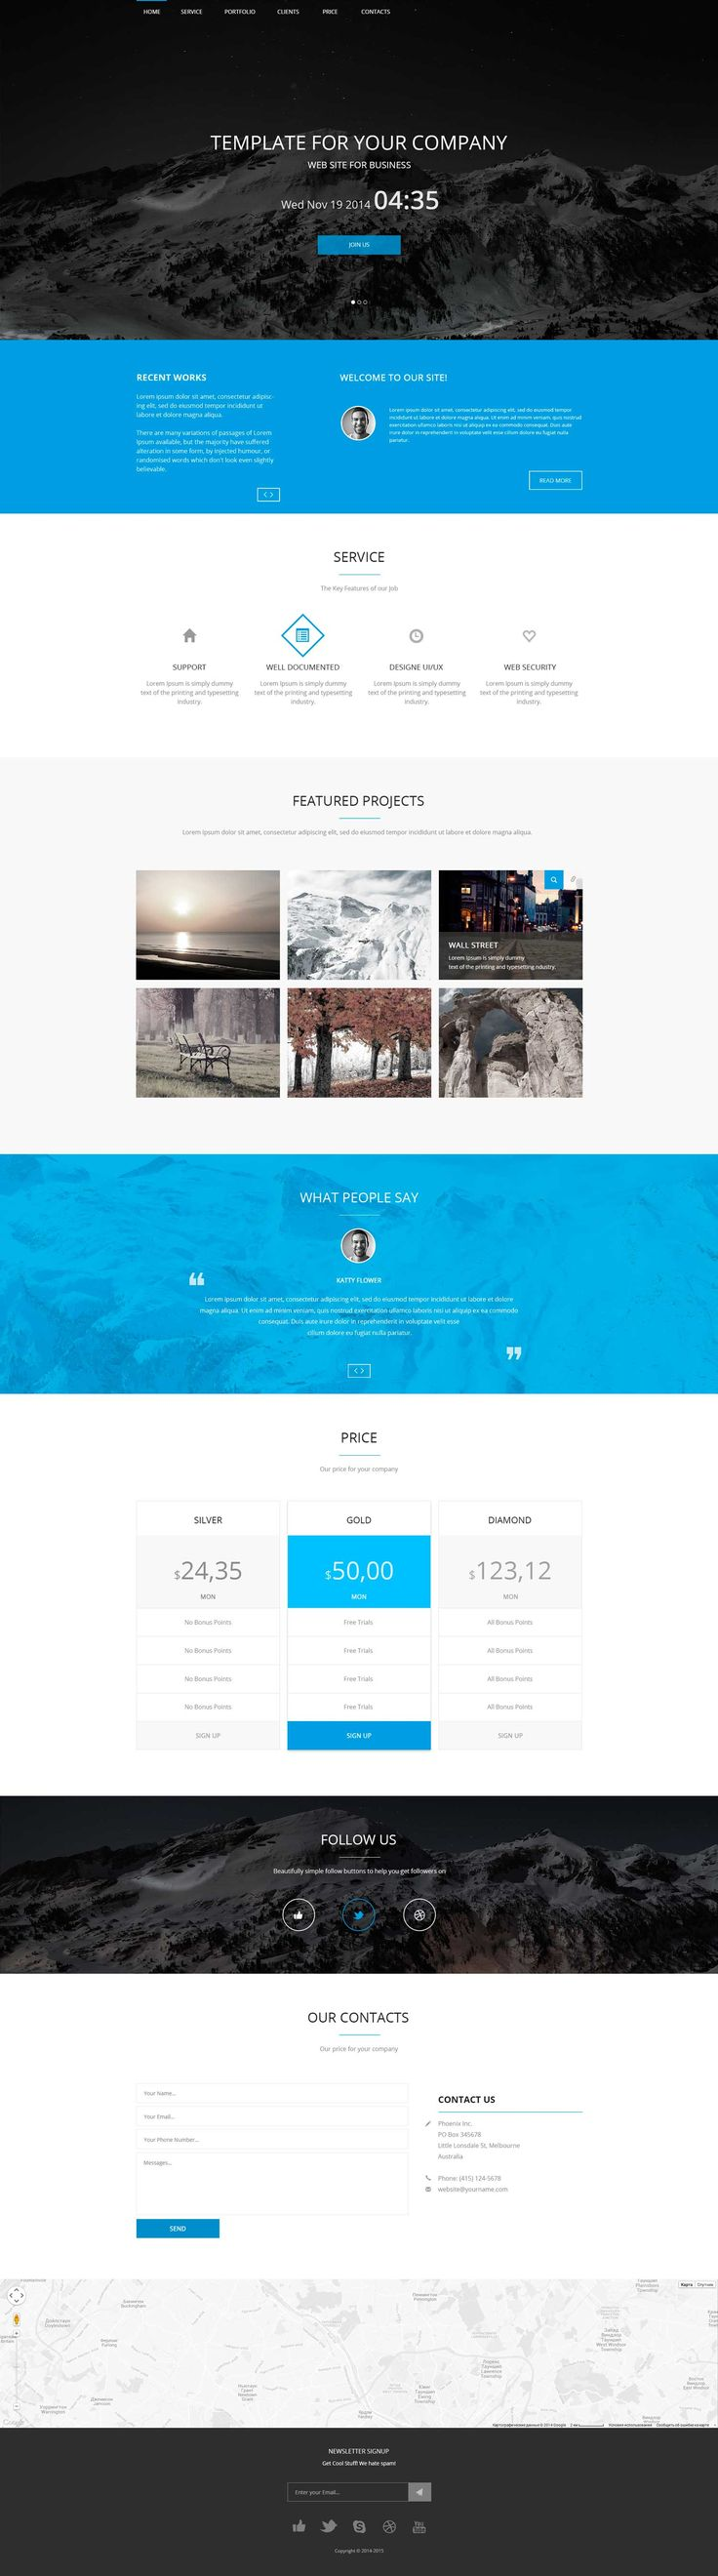 66 best html templates images on pinterest html templates